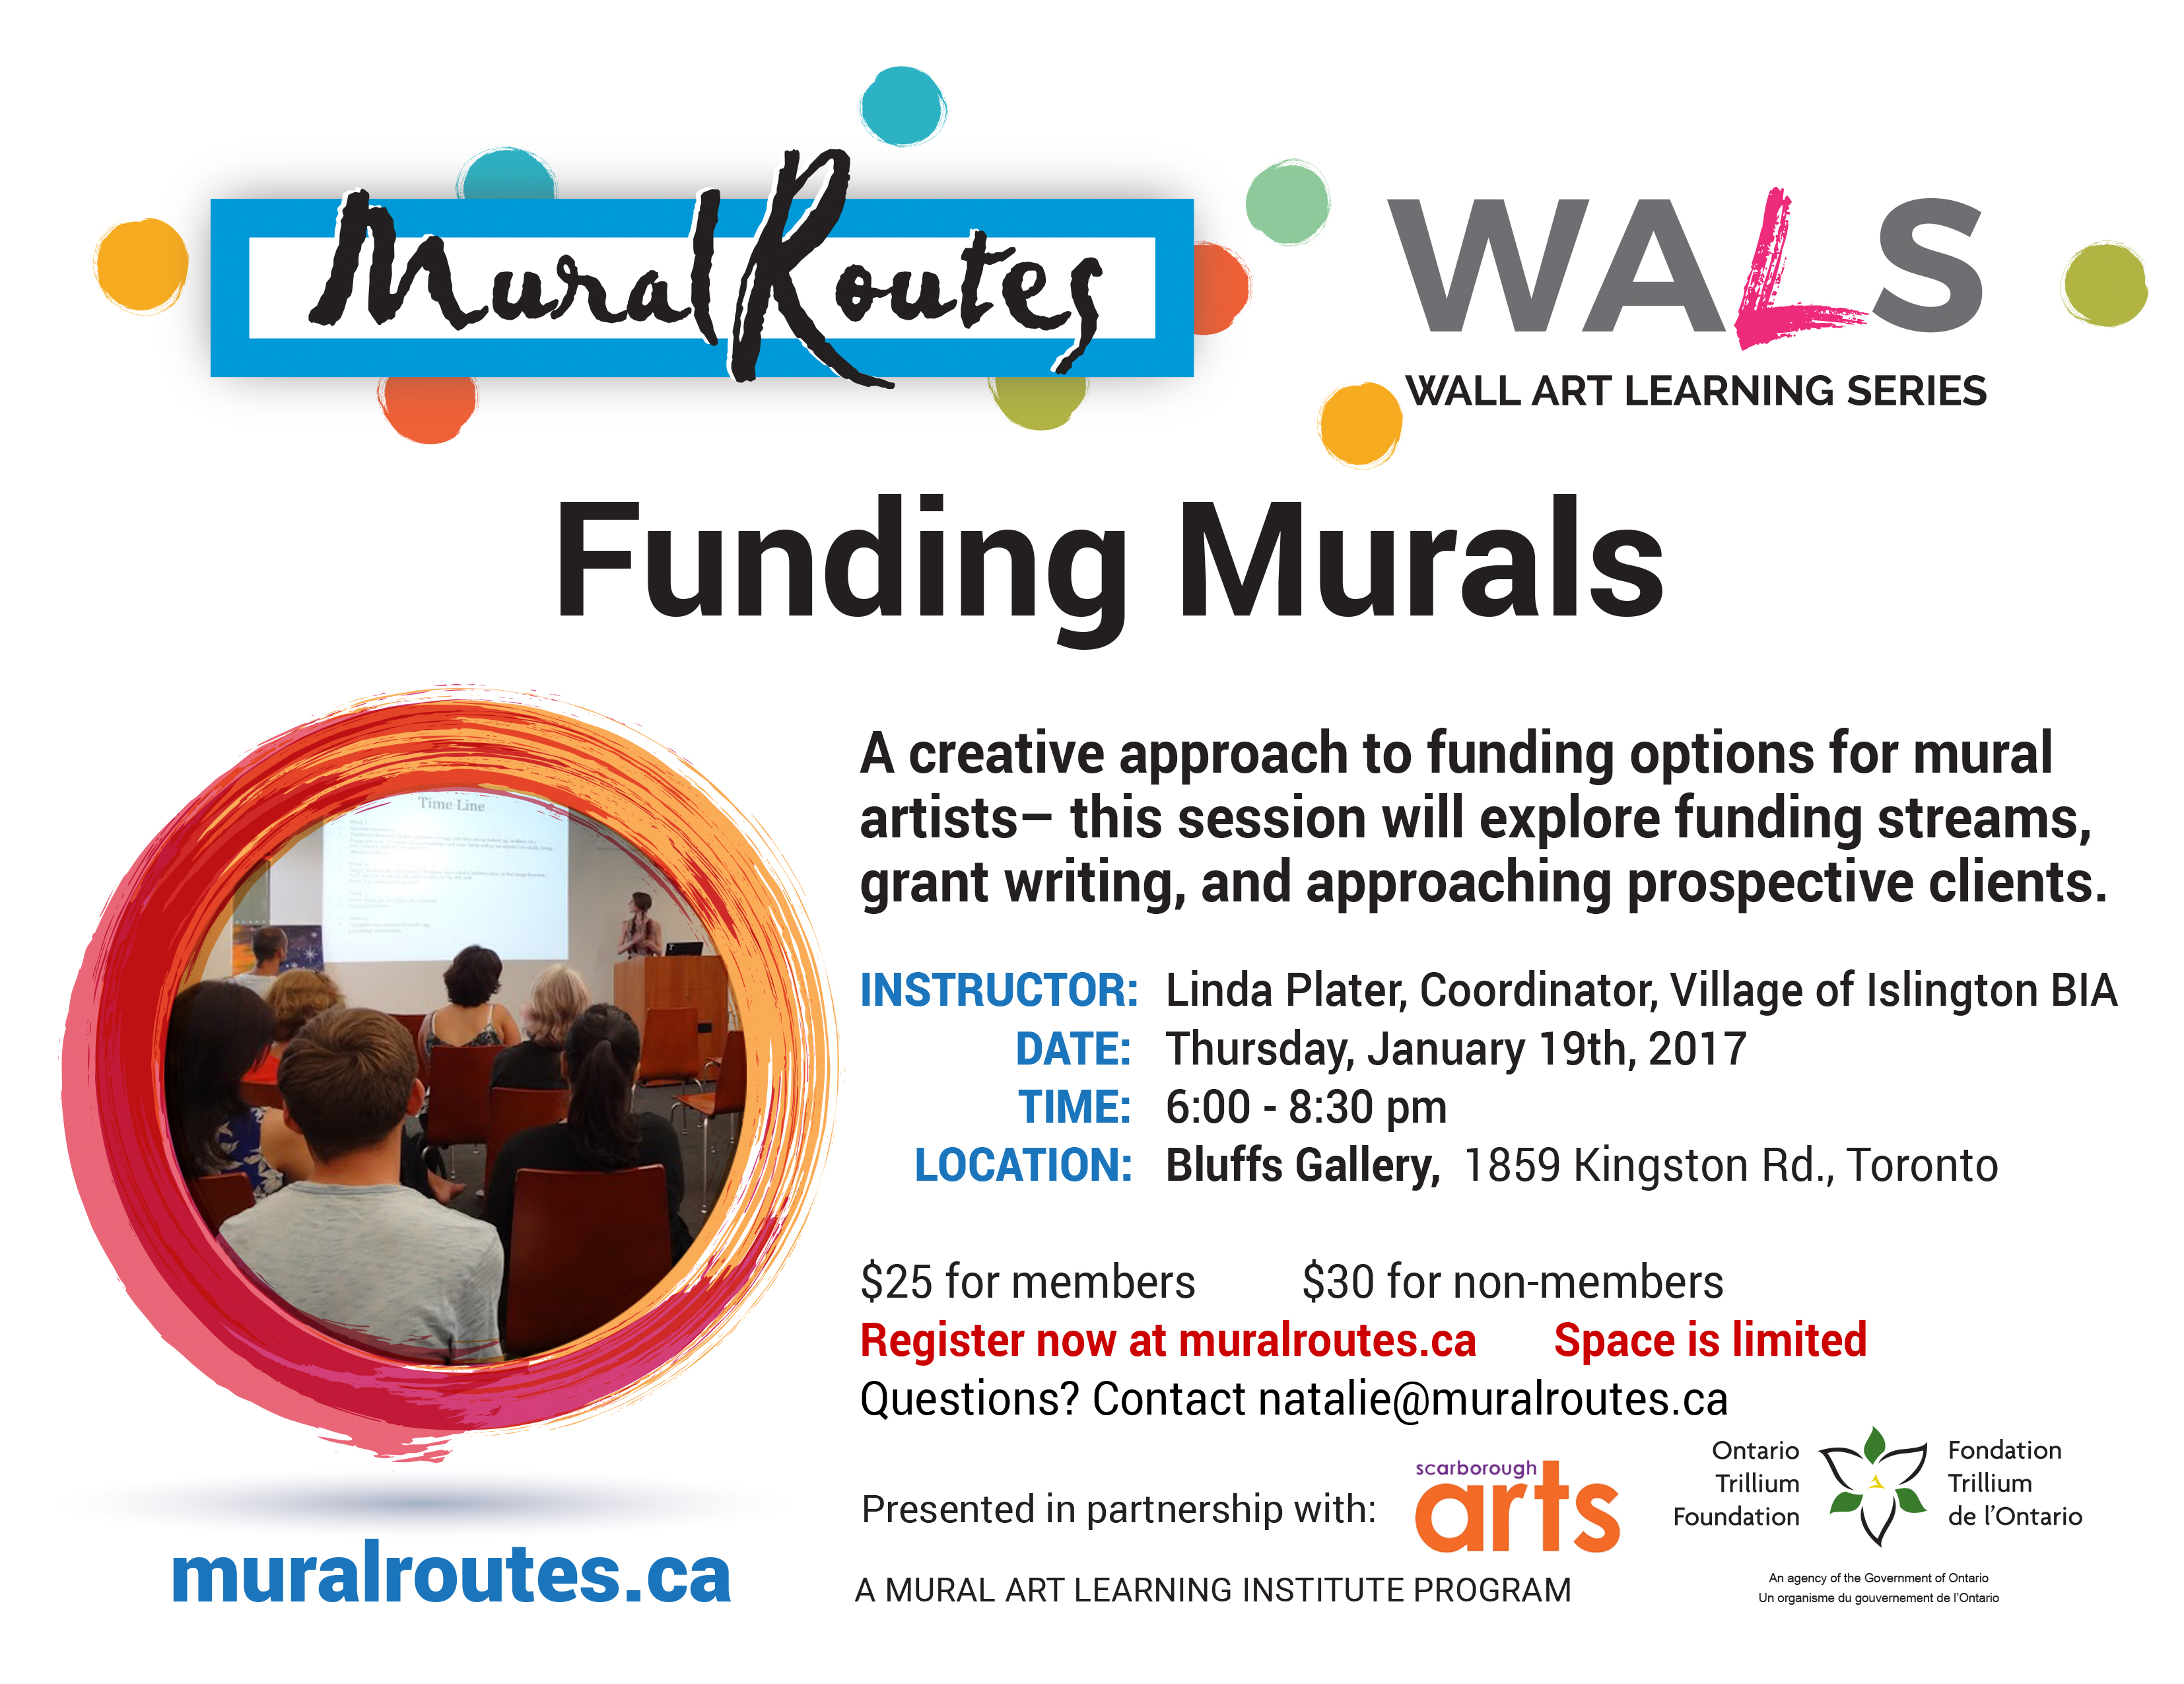 WALS: Funding Murals - Mural Routes